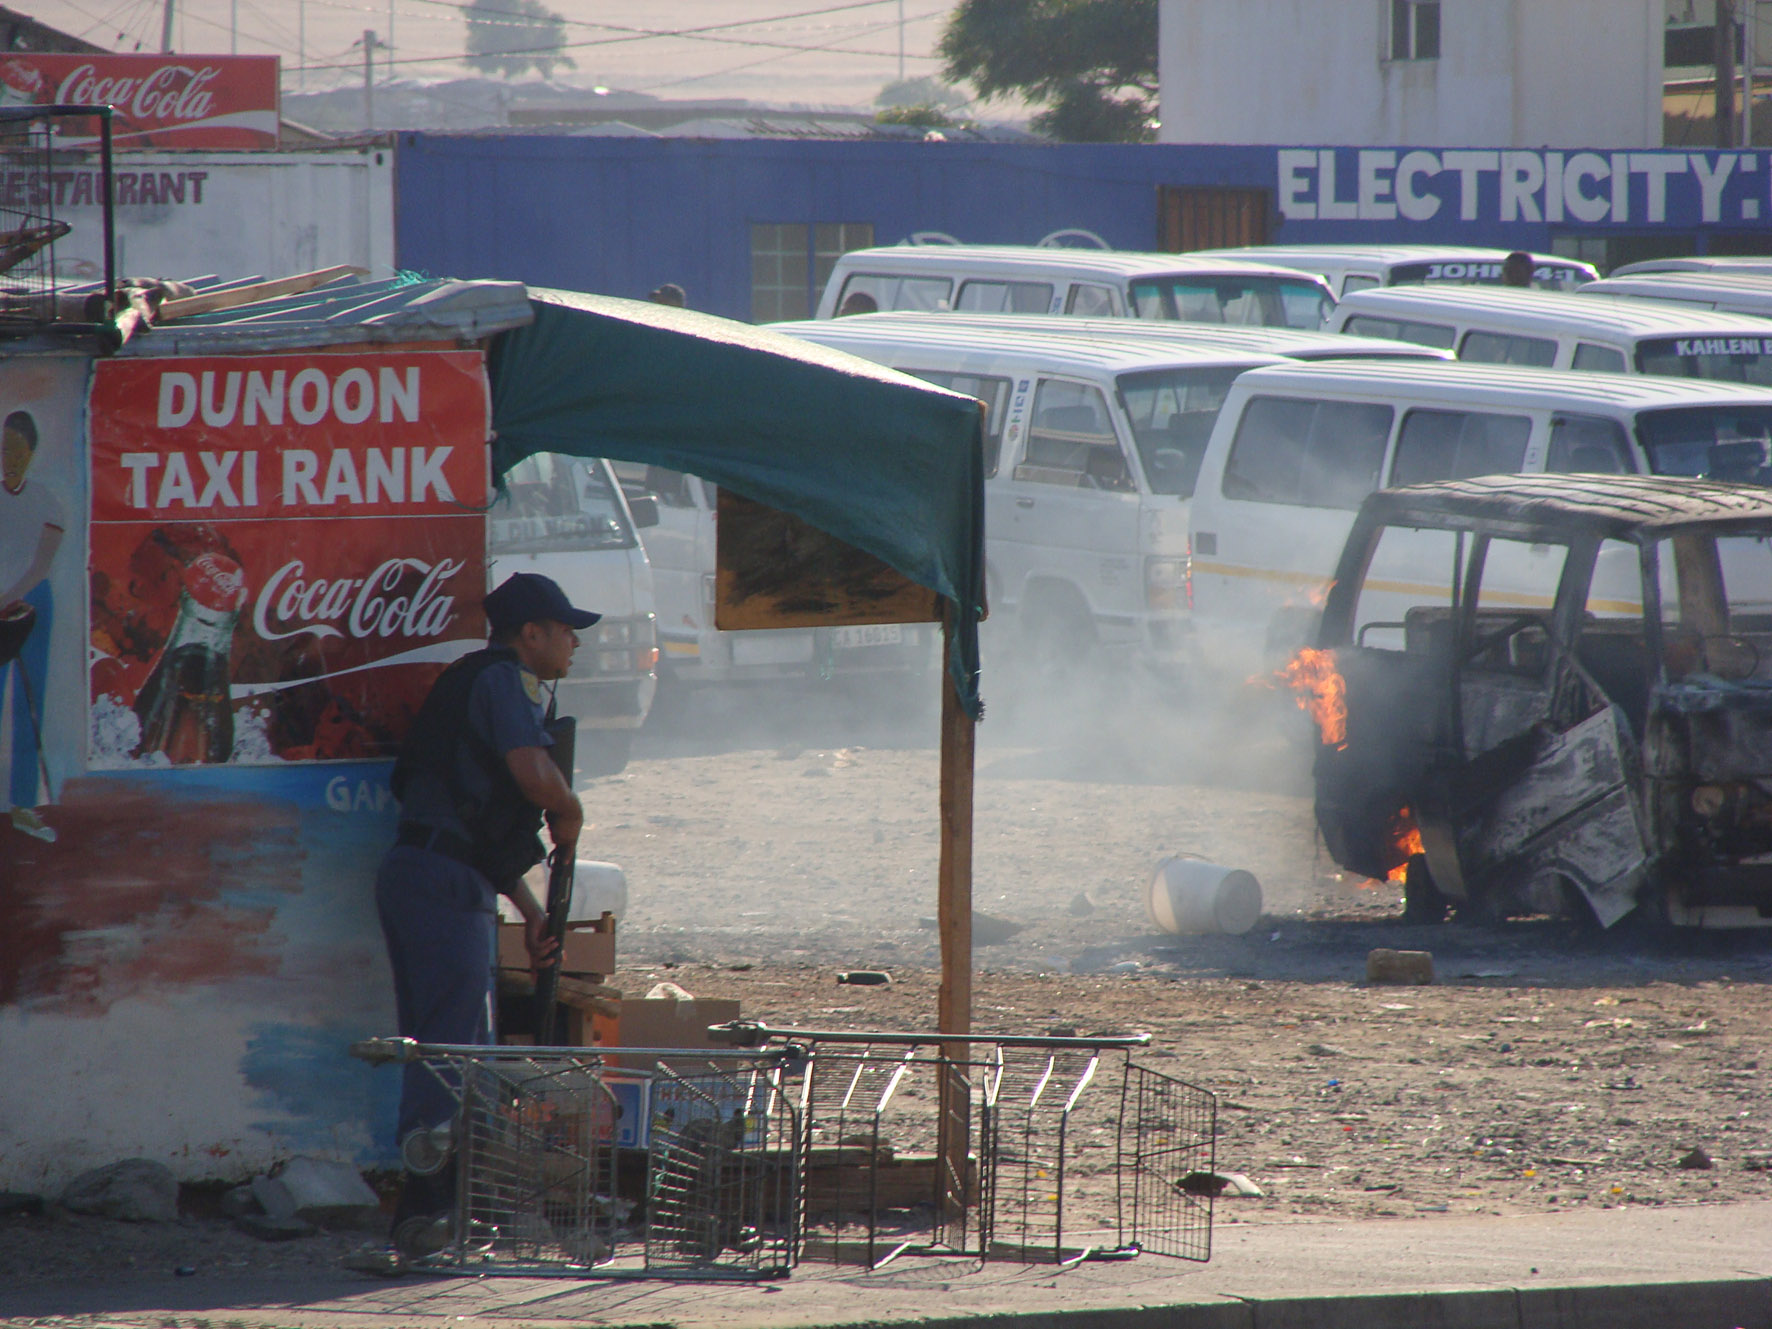 A policeman takes cover behind a food stall as a taxi burns at the Du Noon taxi rank. Photo: Peter Luhanga/WCN